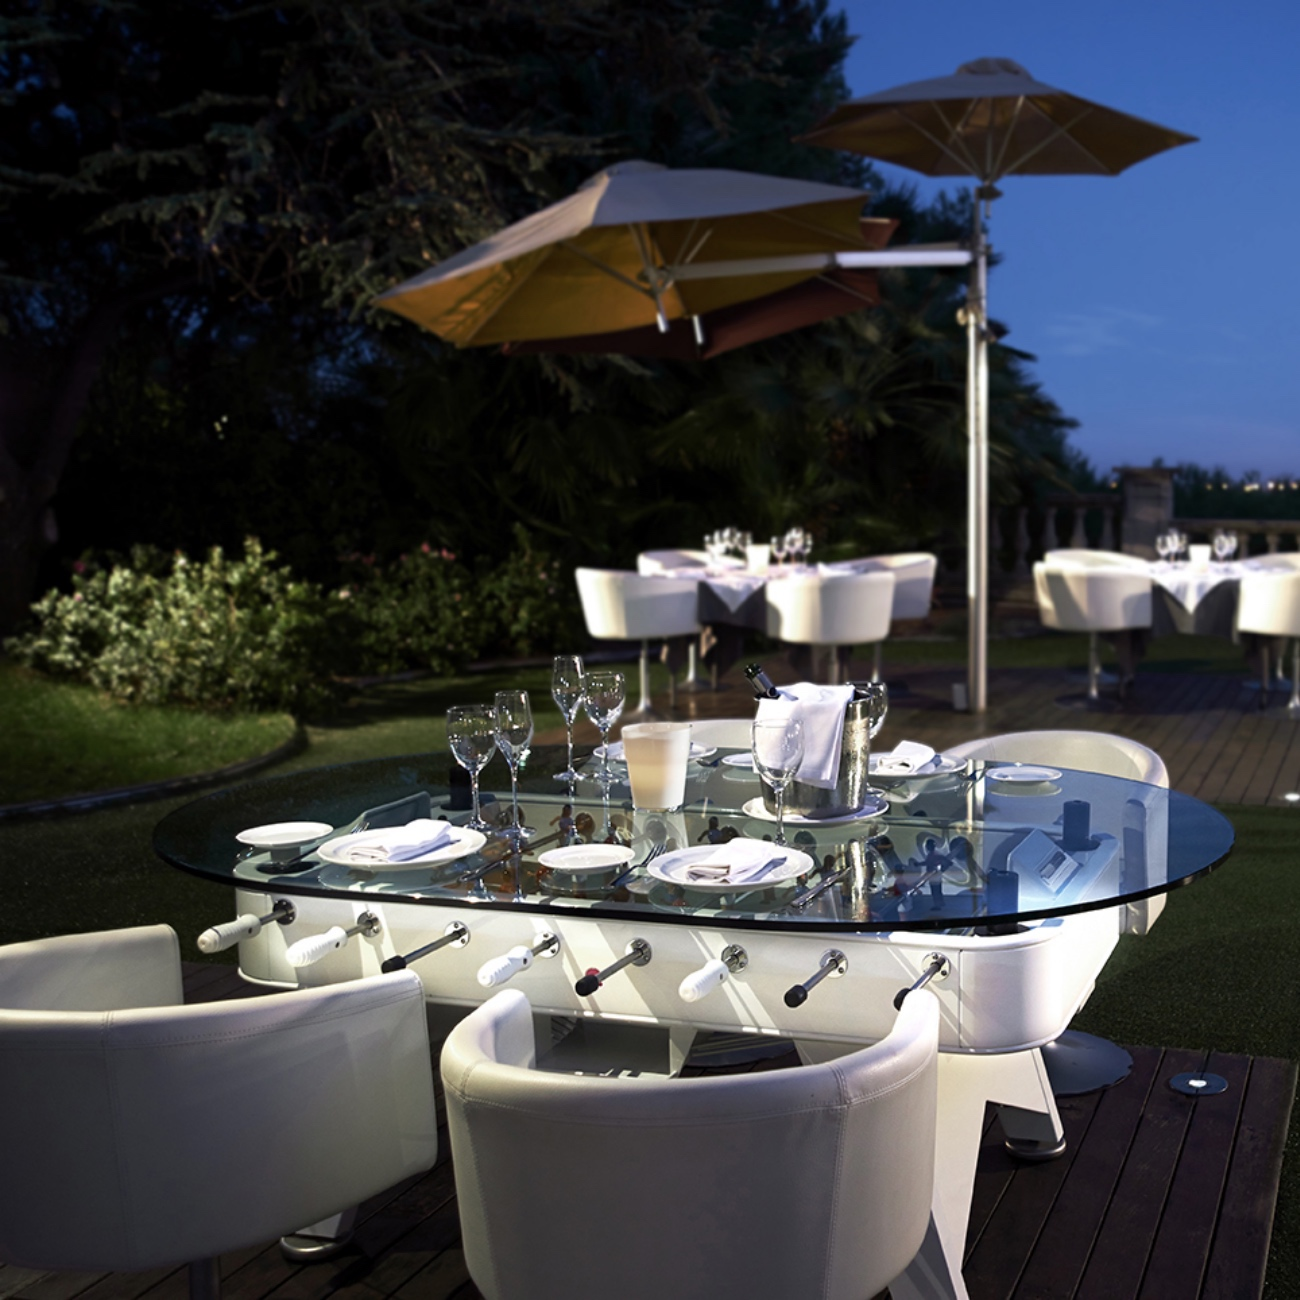 Outdoor dining football table luxury outdoor living for Luxury outdoor living